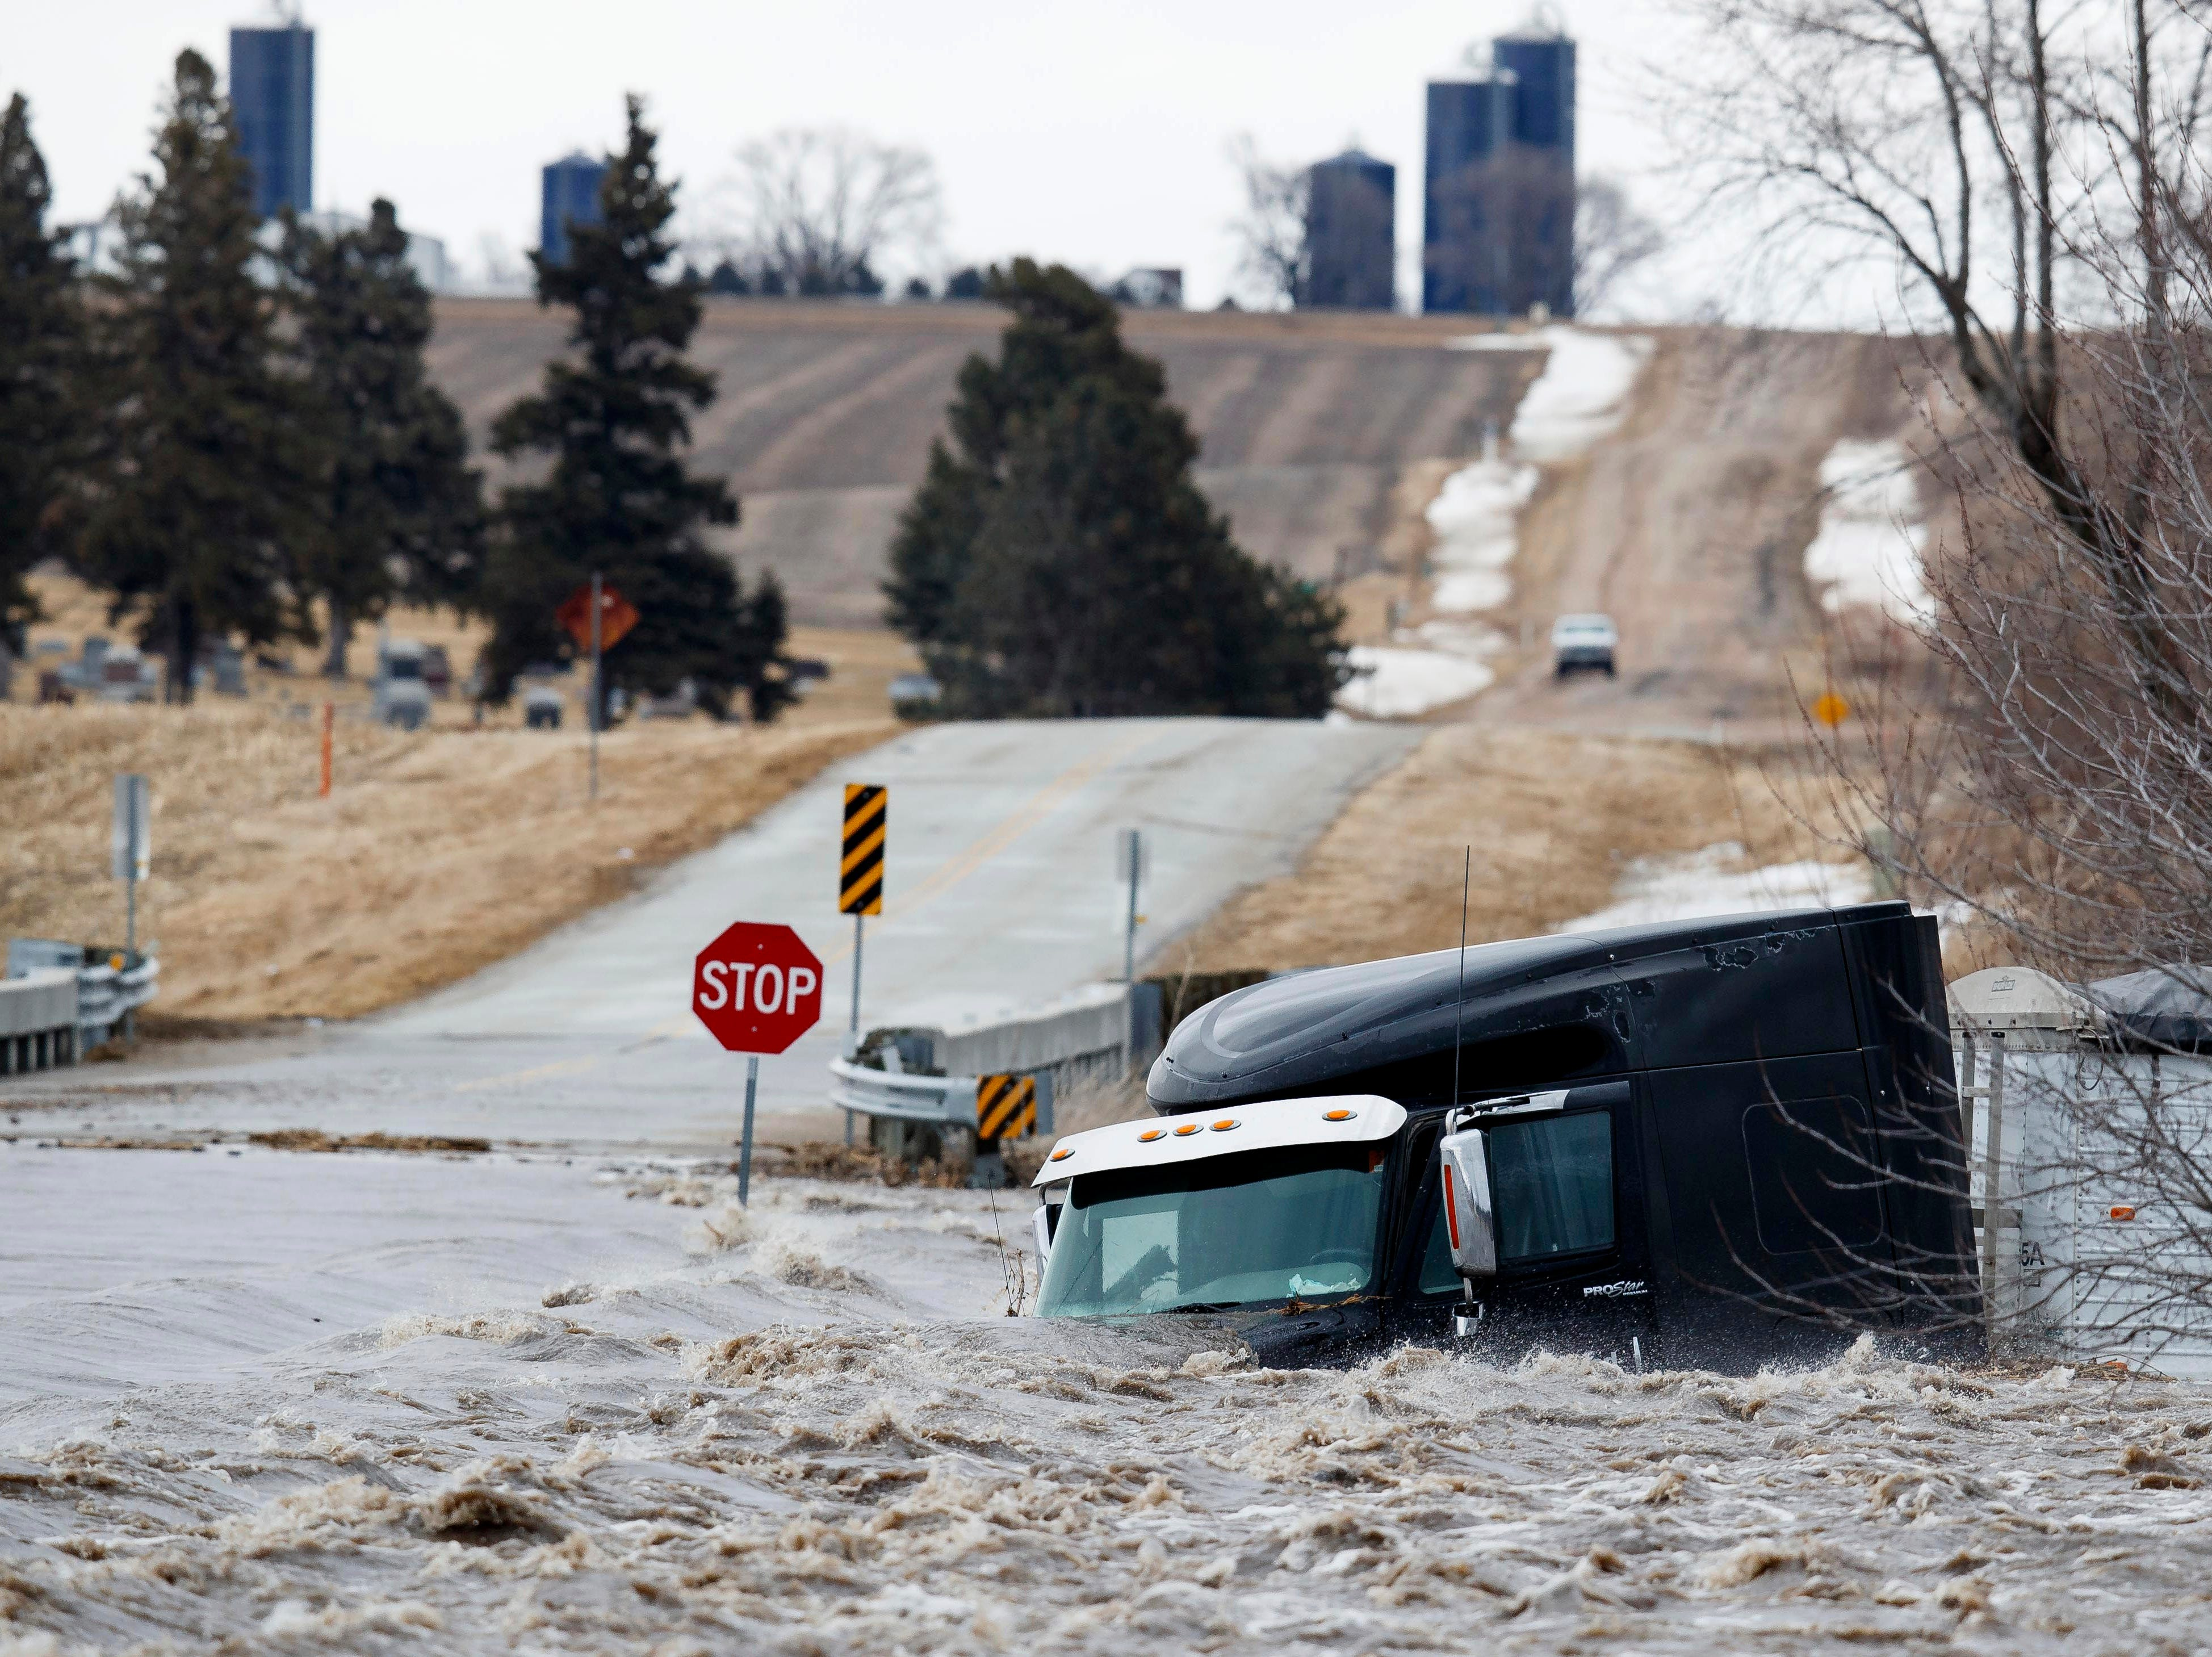 A semi truck and trailer are swept off the road by floodwaters Thursday, March 13, 2019, in Arlington, Neb. Evacuations forced by flooding have occurred in several eastern Nebraska communities, as western Nebraska residents struggled with blizzard-like conditions.